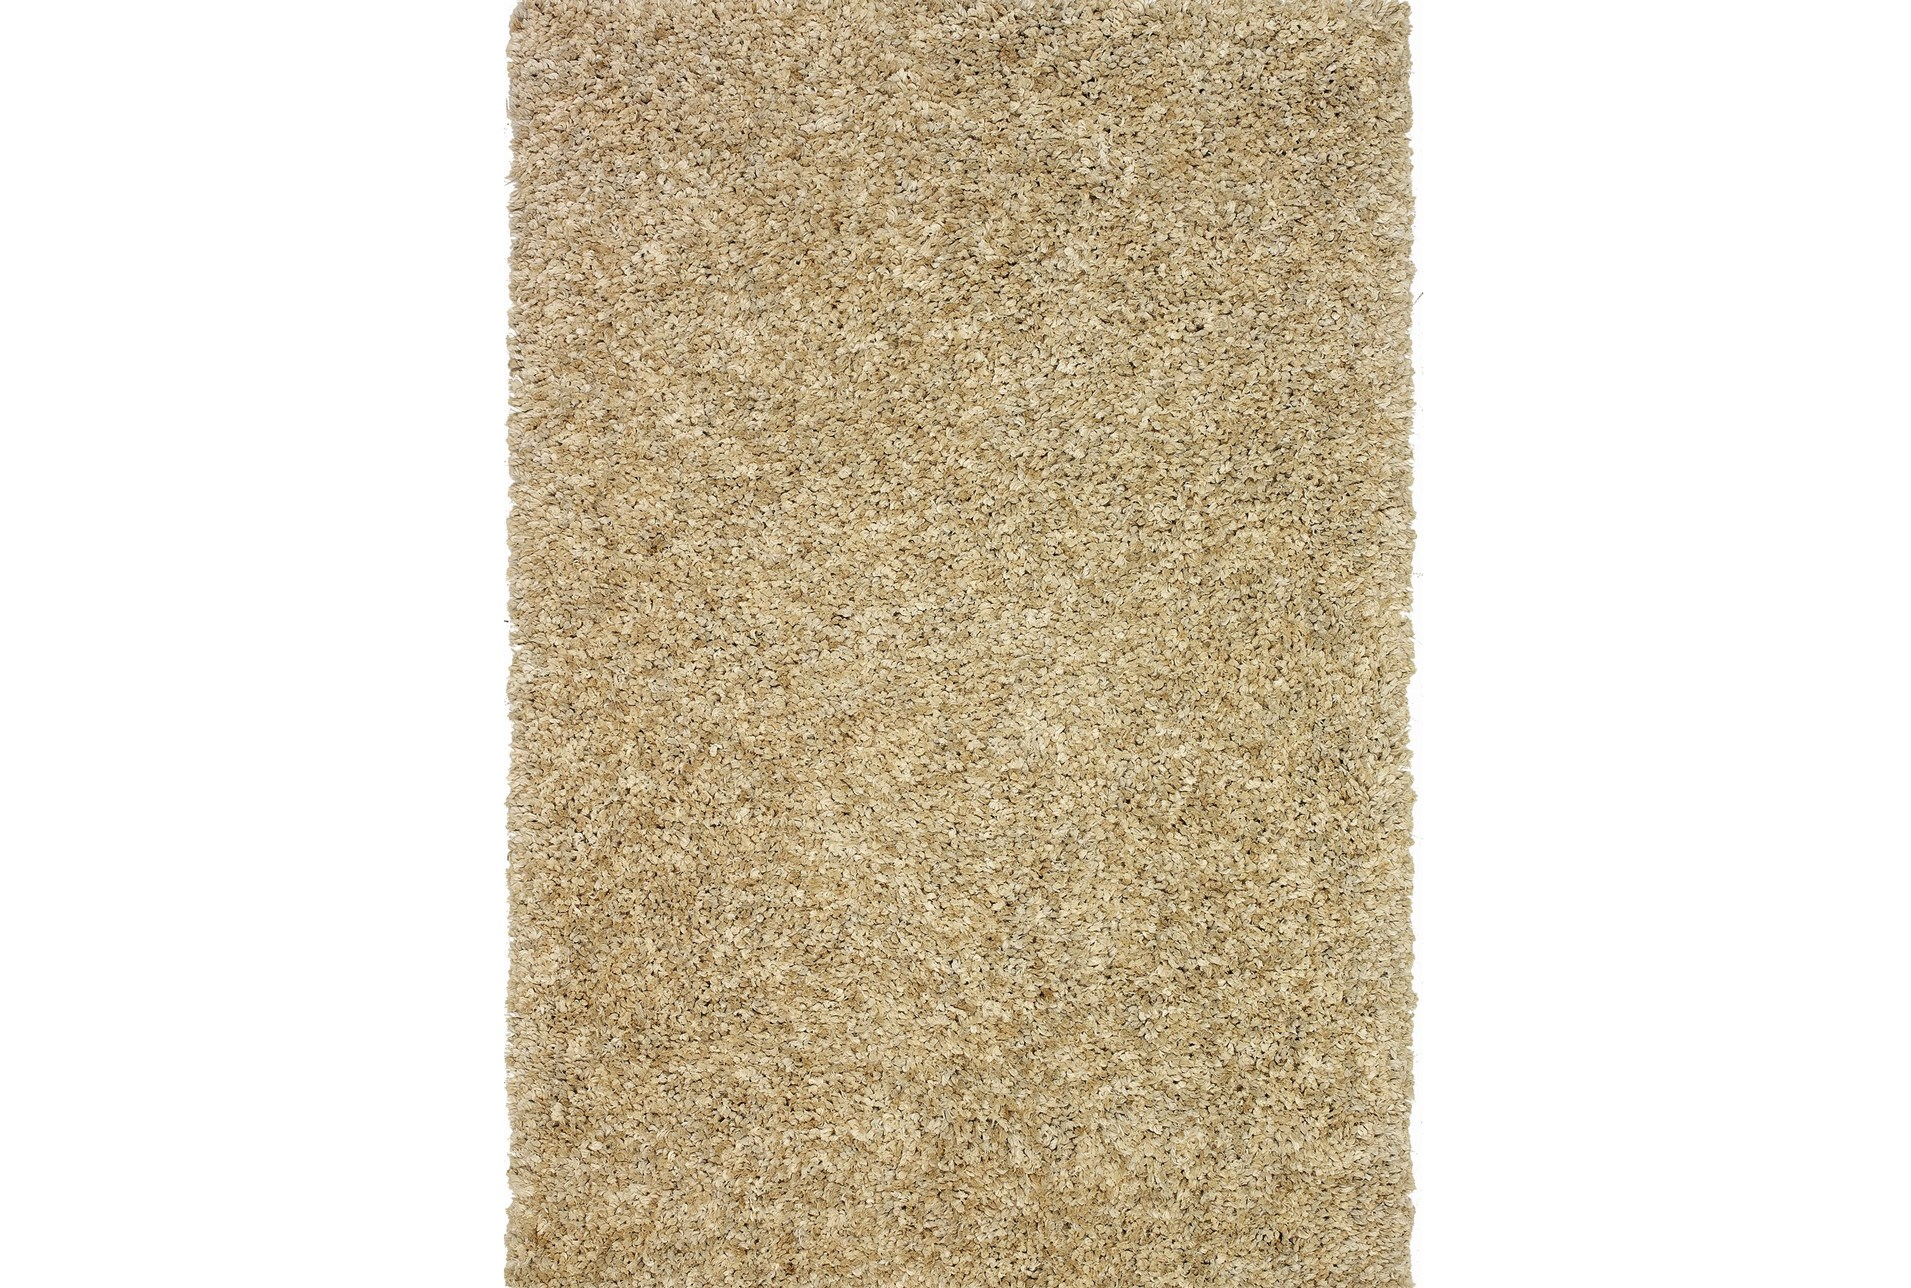 60x90 Rug Dolce Sand Qty 1 Has Been Successfully Added To Your Cart